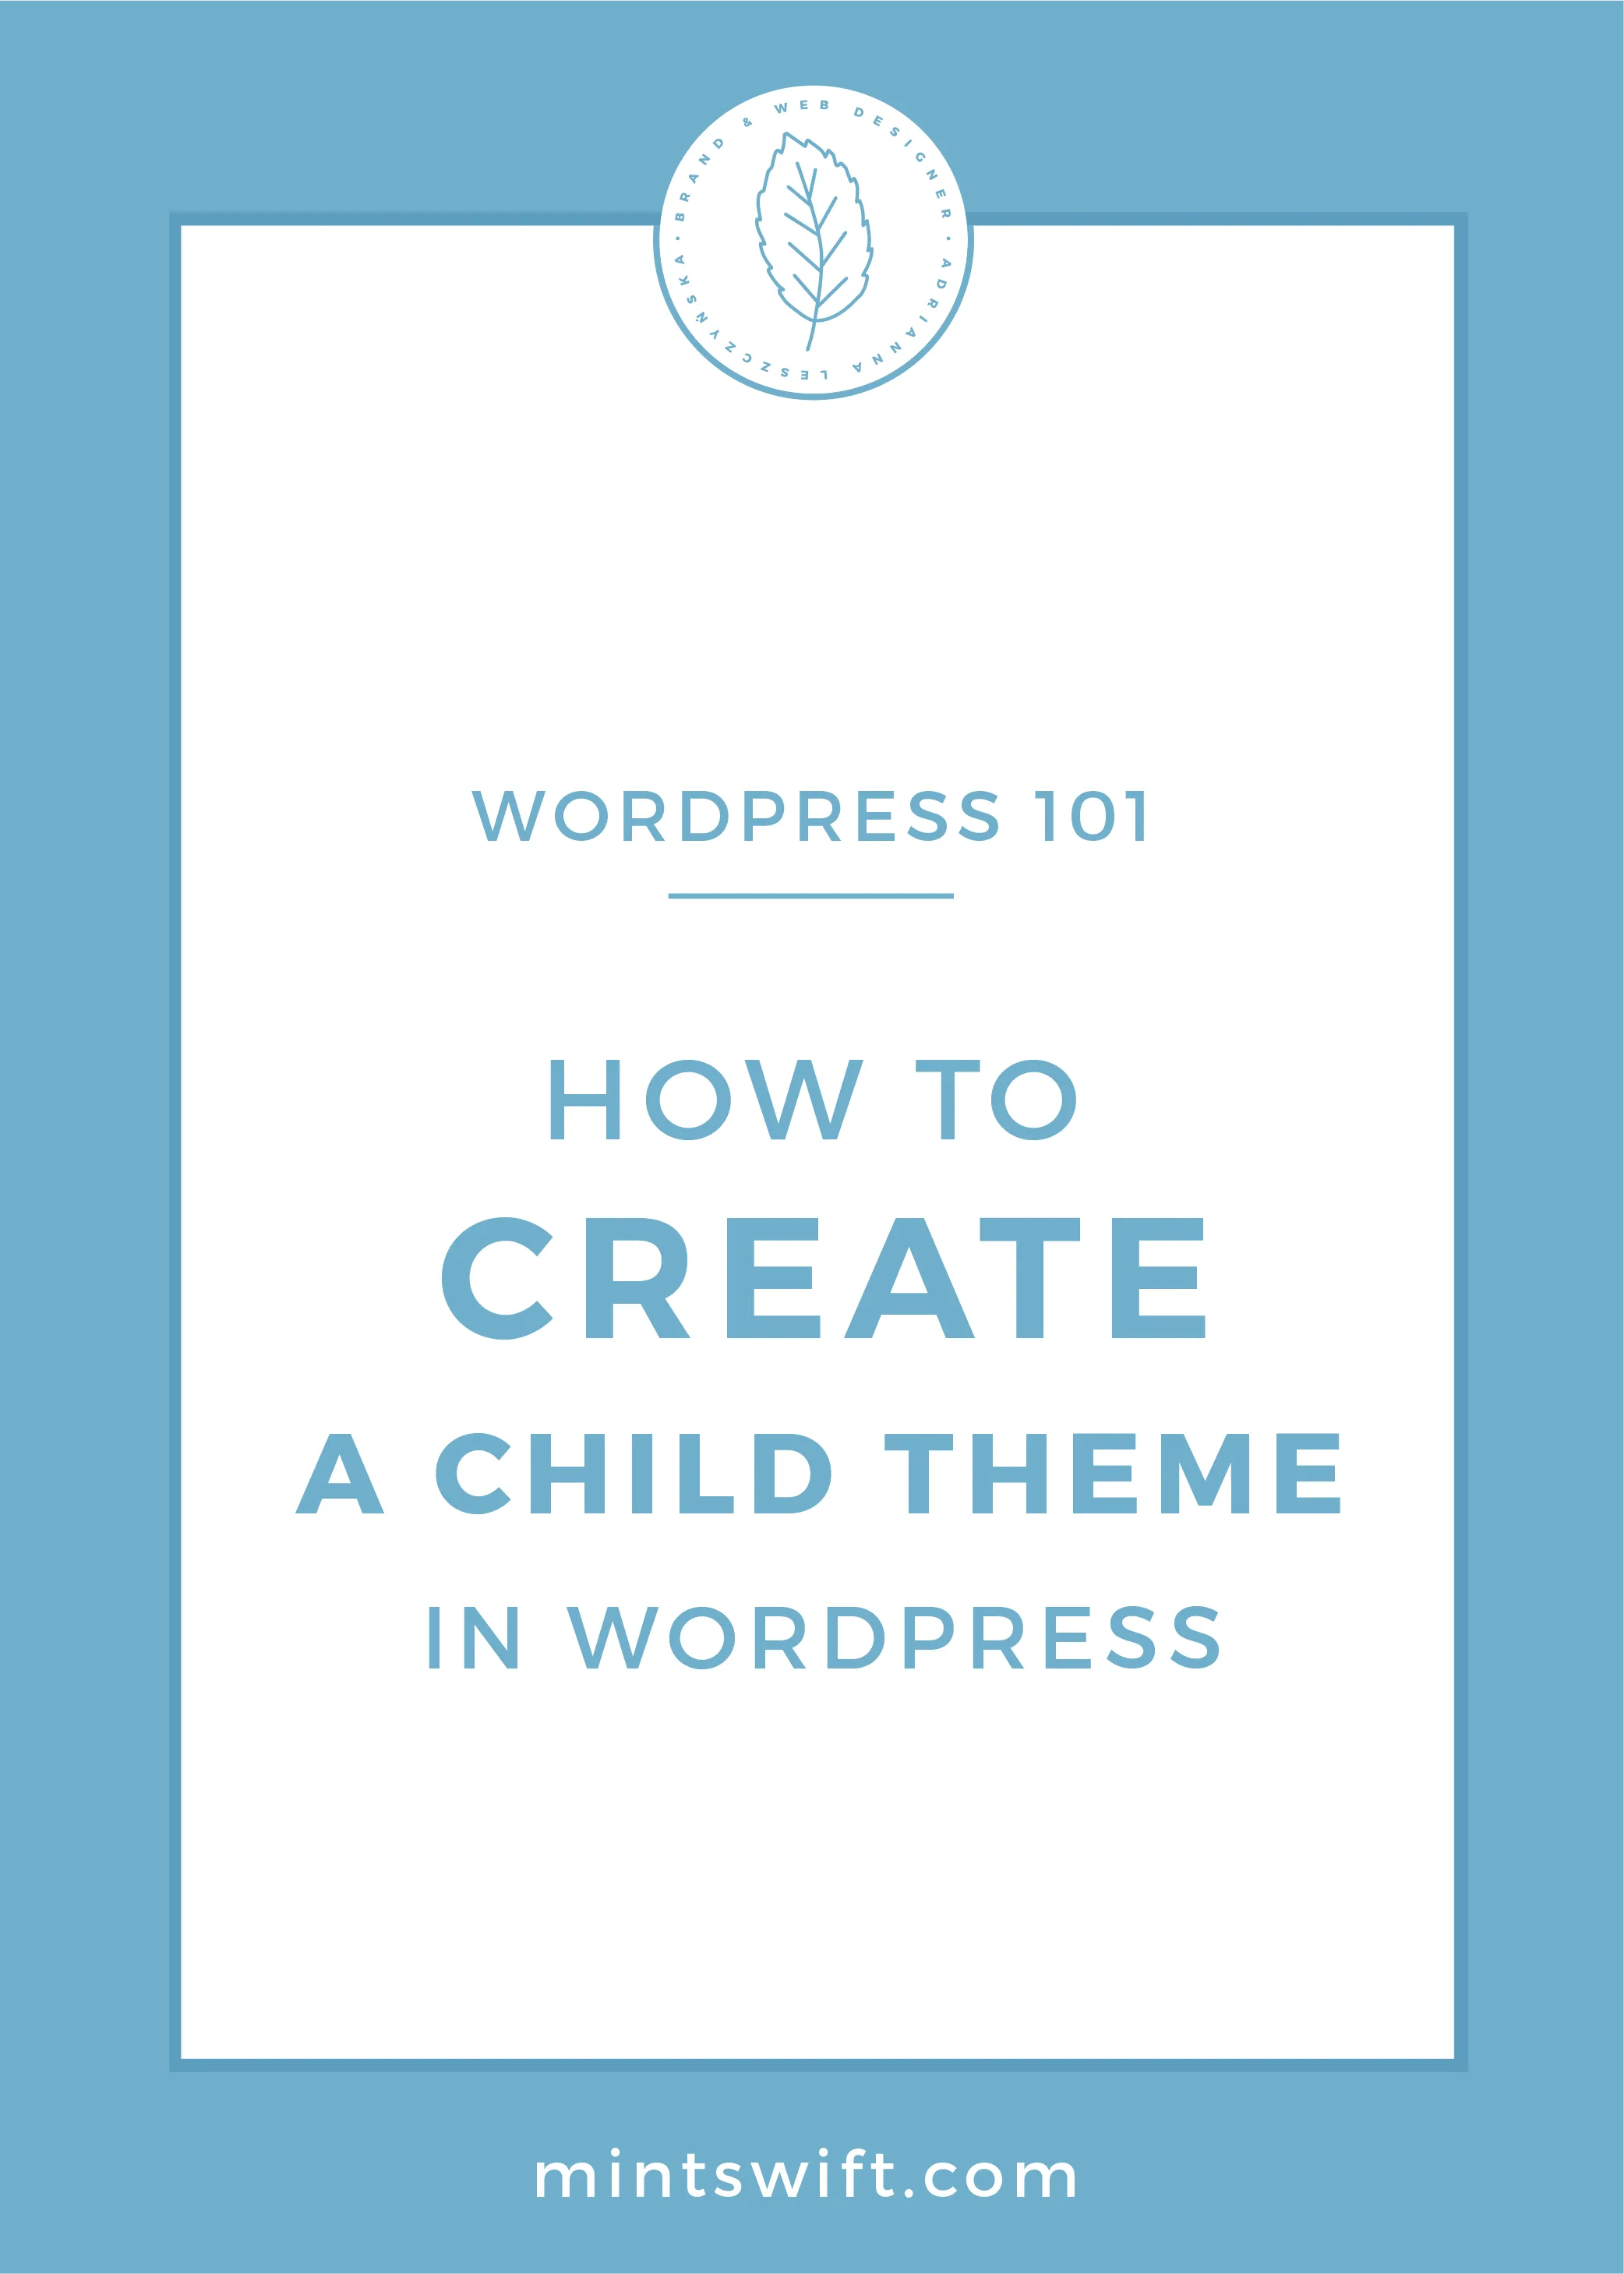 How To Create a Child Theme in WordPress by MintSwift